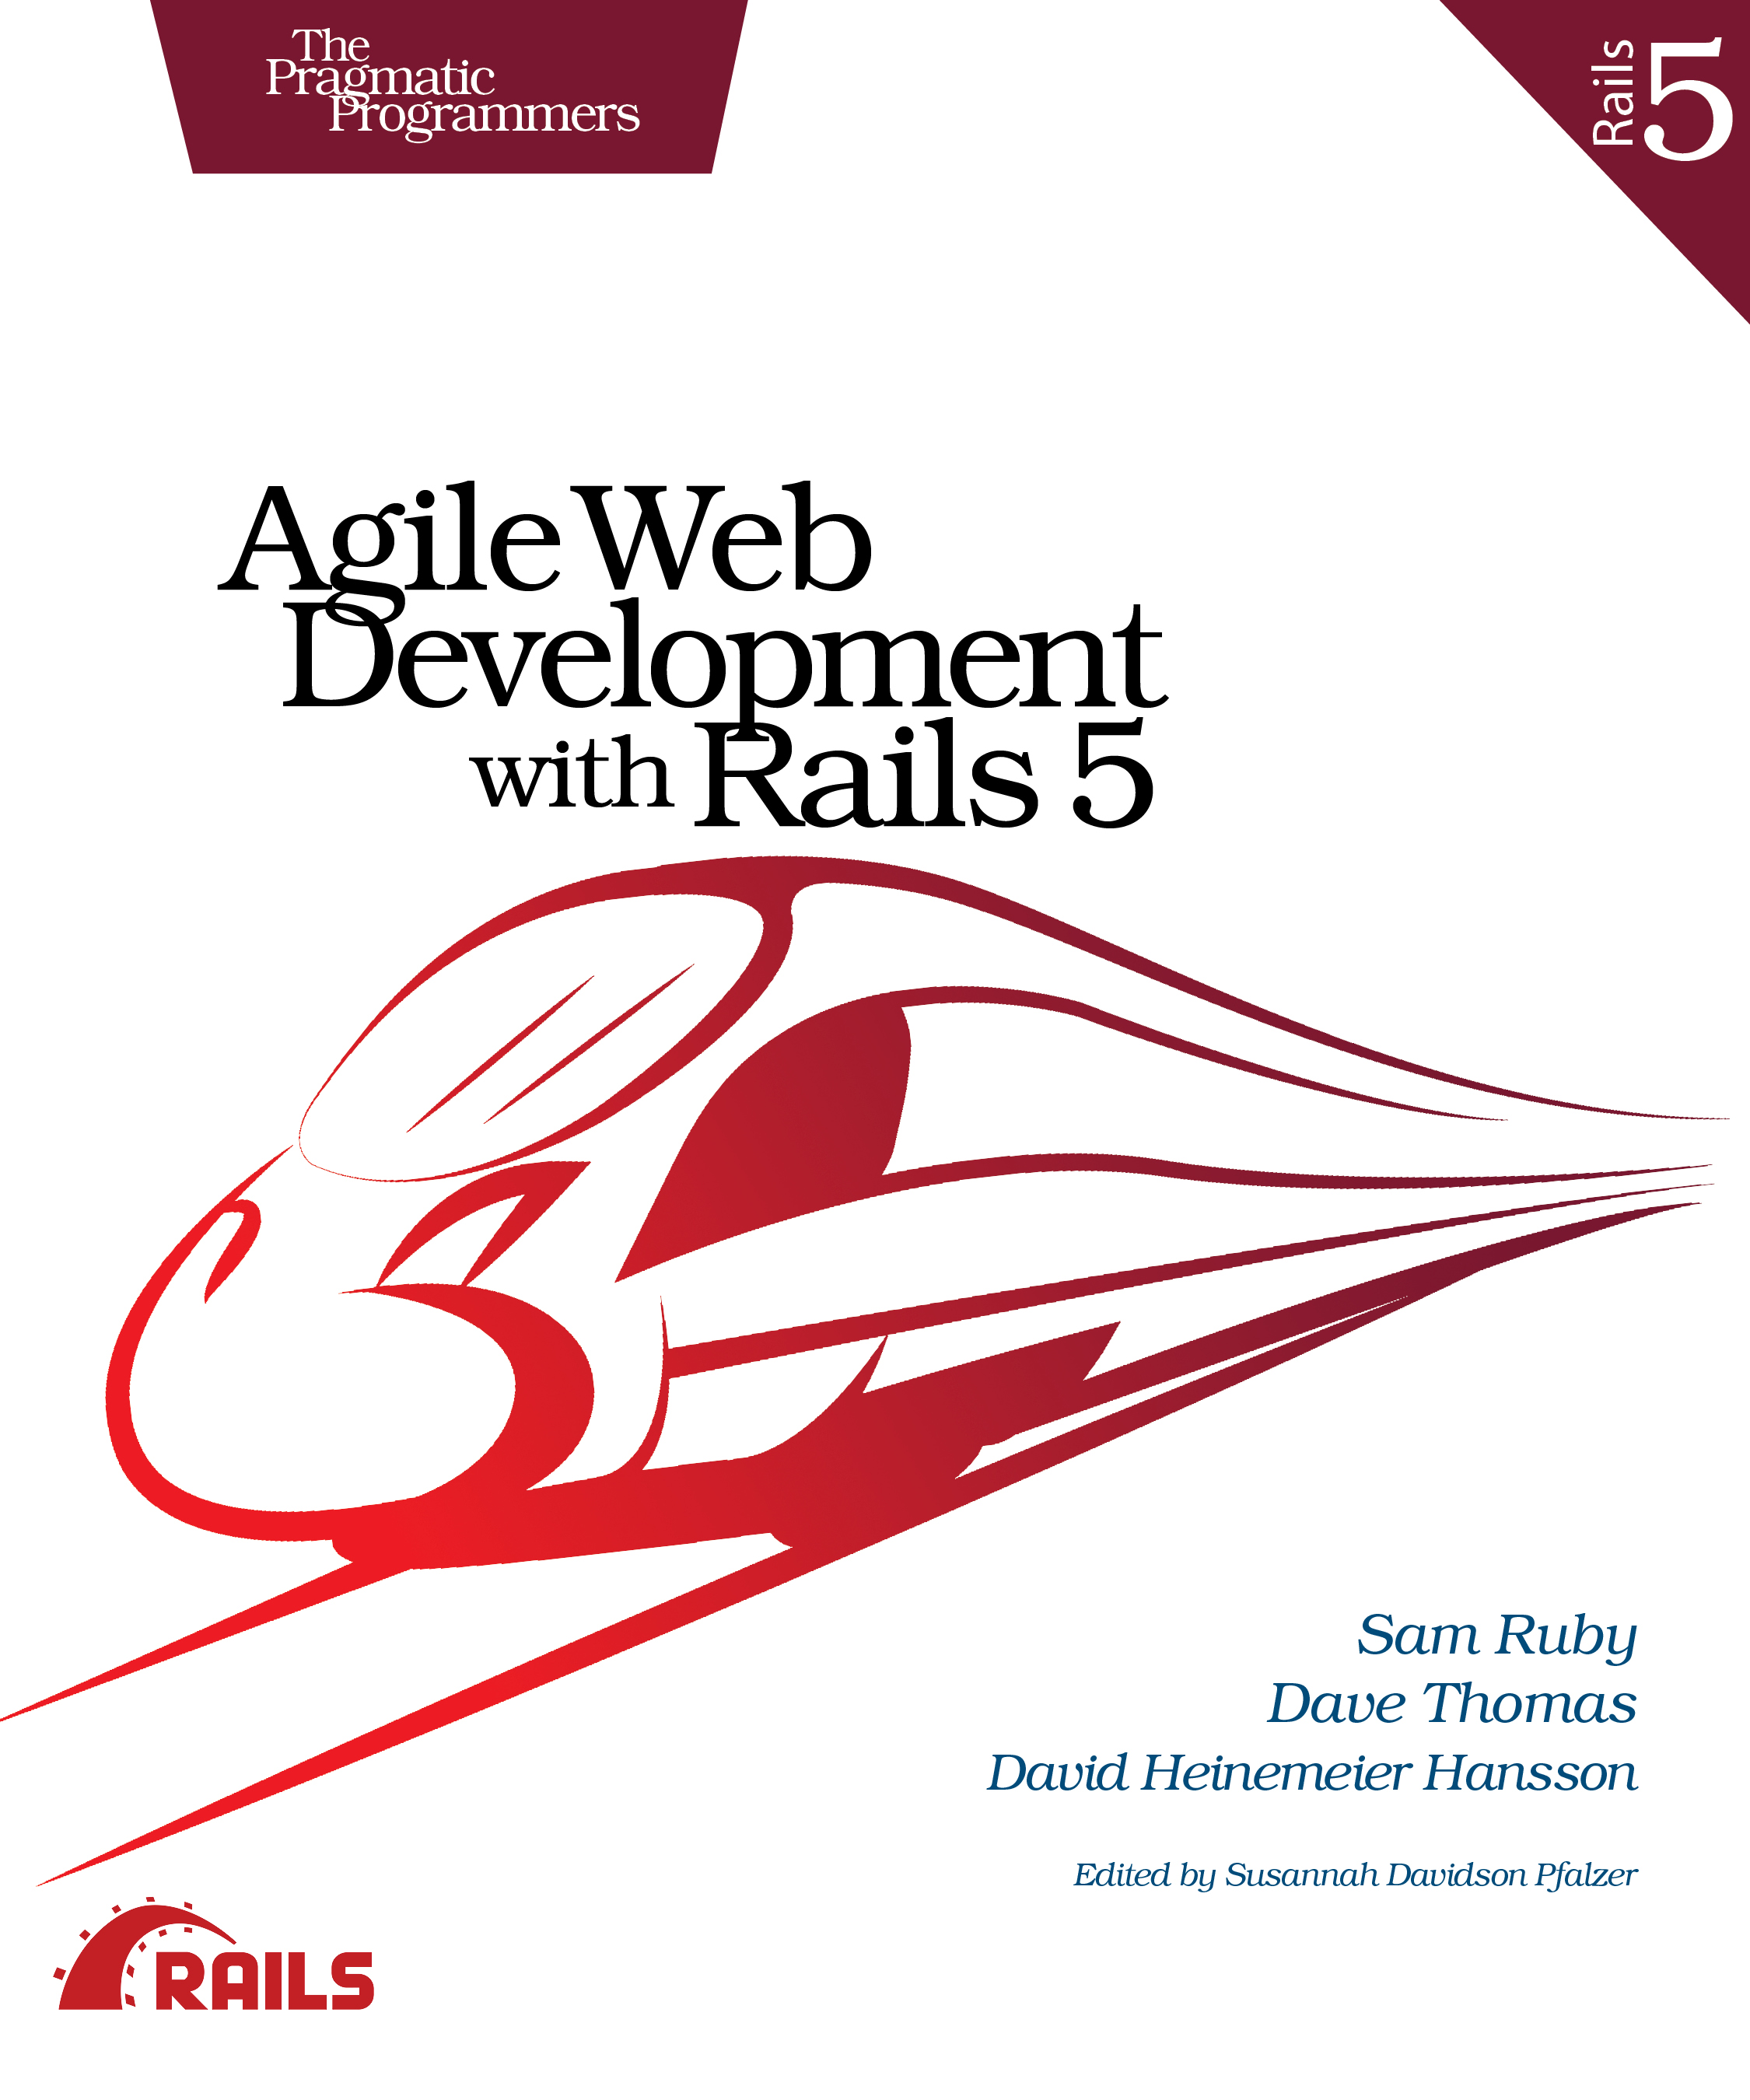 Agile Web Development with Rails 5 by Sam Ruby | The Pragmatic Bookshelf